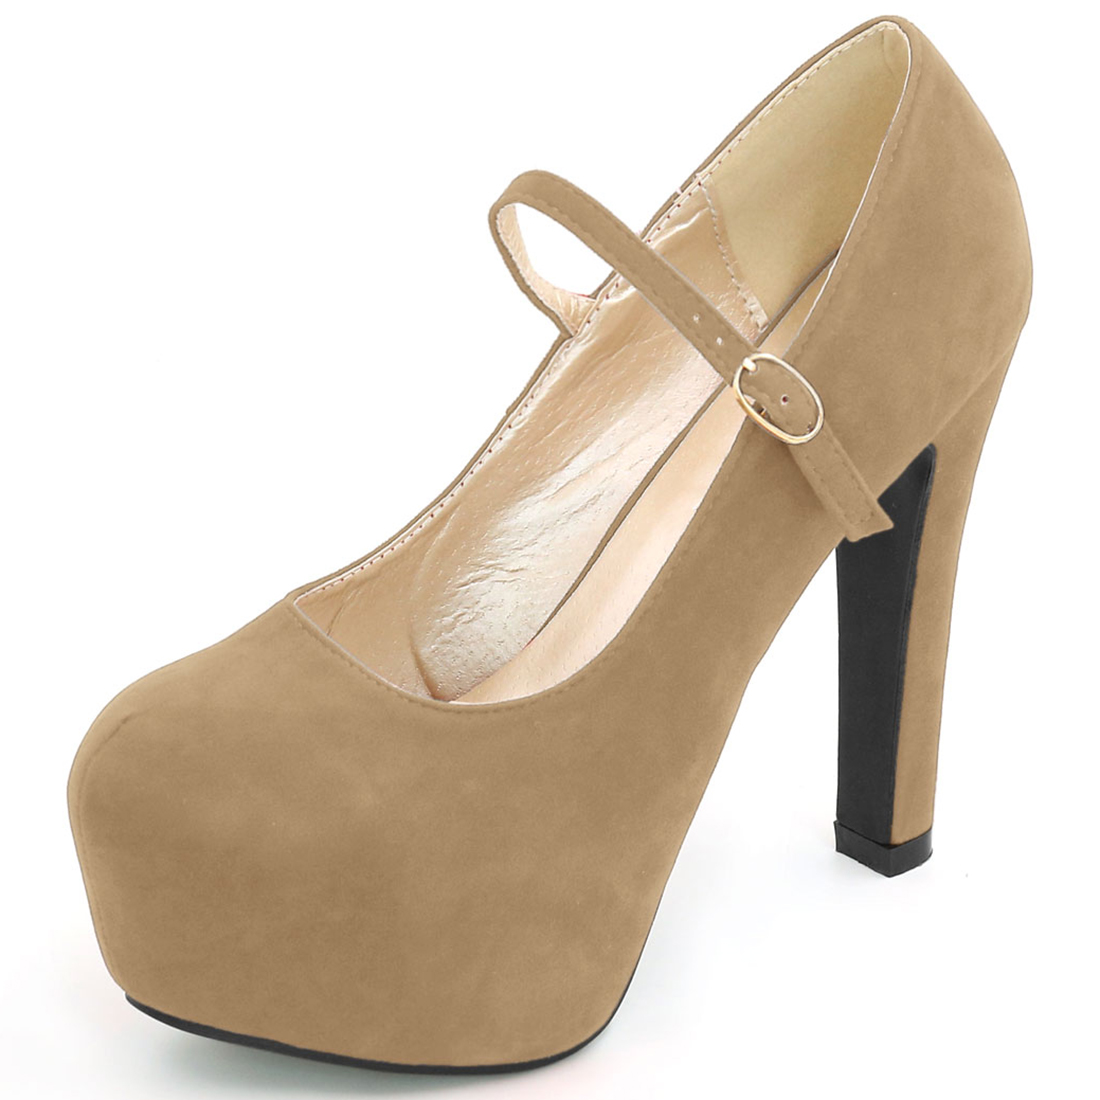 Woman Rounded Toe Chunky Platform Buckle Strap Pumps Dark Beige US 8.5